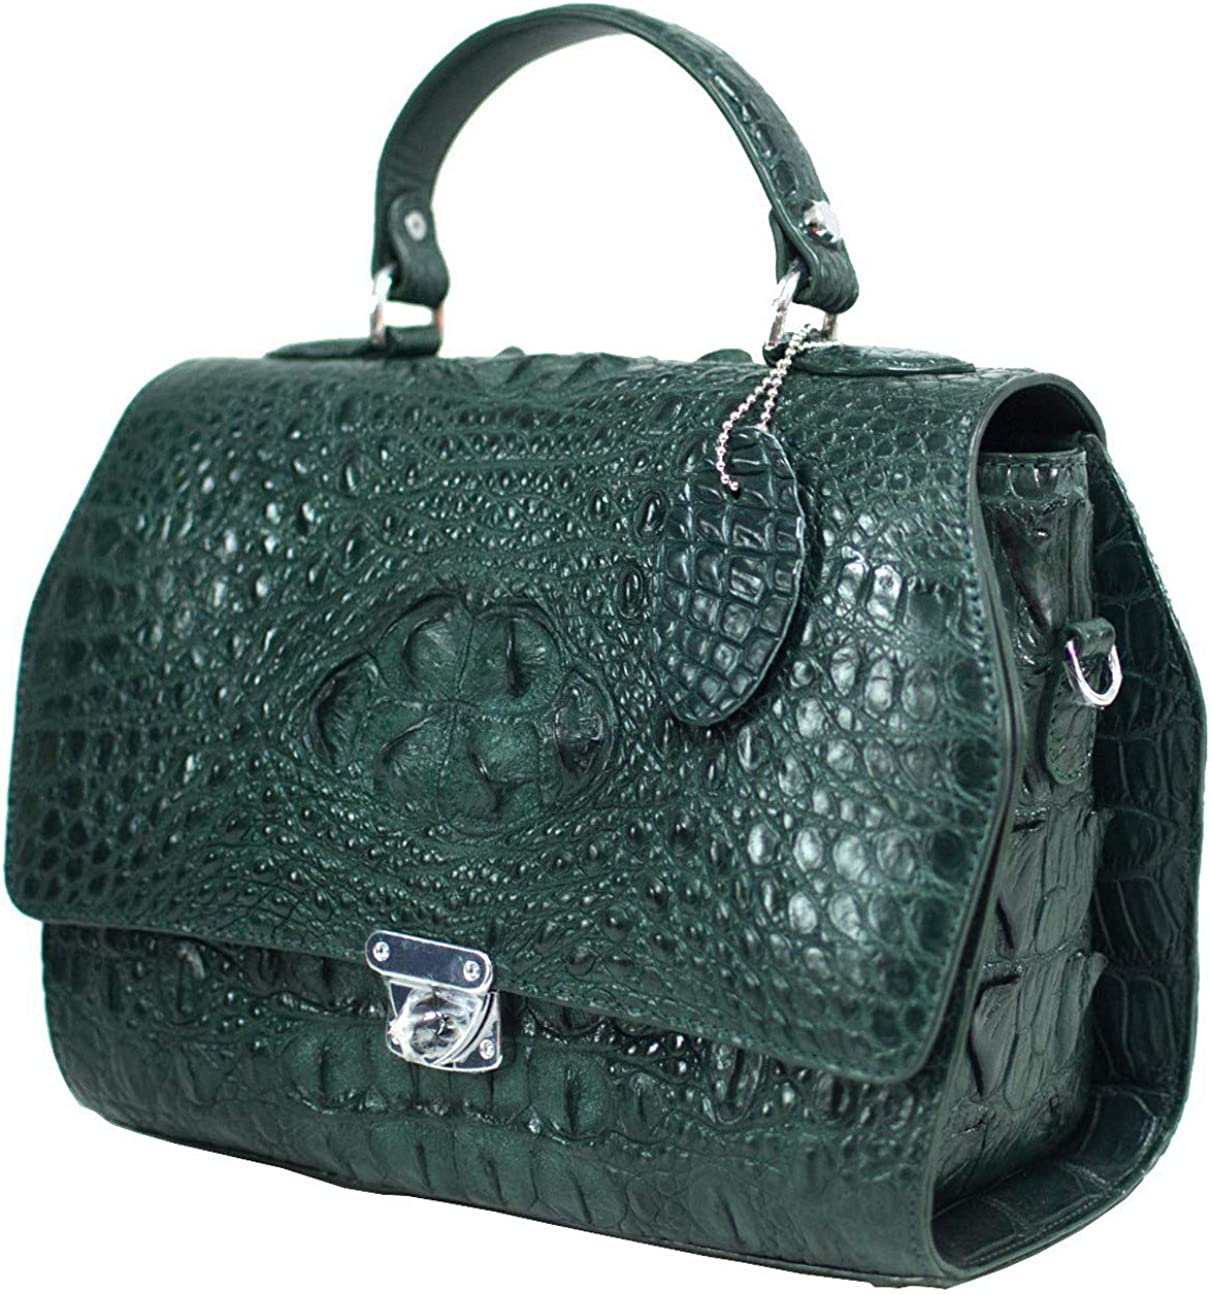 Authentic M Crocodile Skin Womens Hornback W/Strap Hobo Shoulder Bag Purse Green Handbag